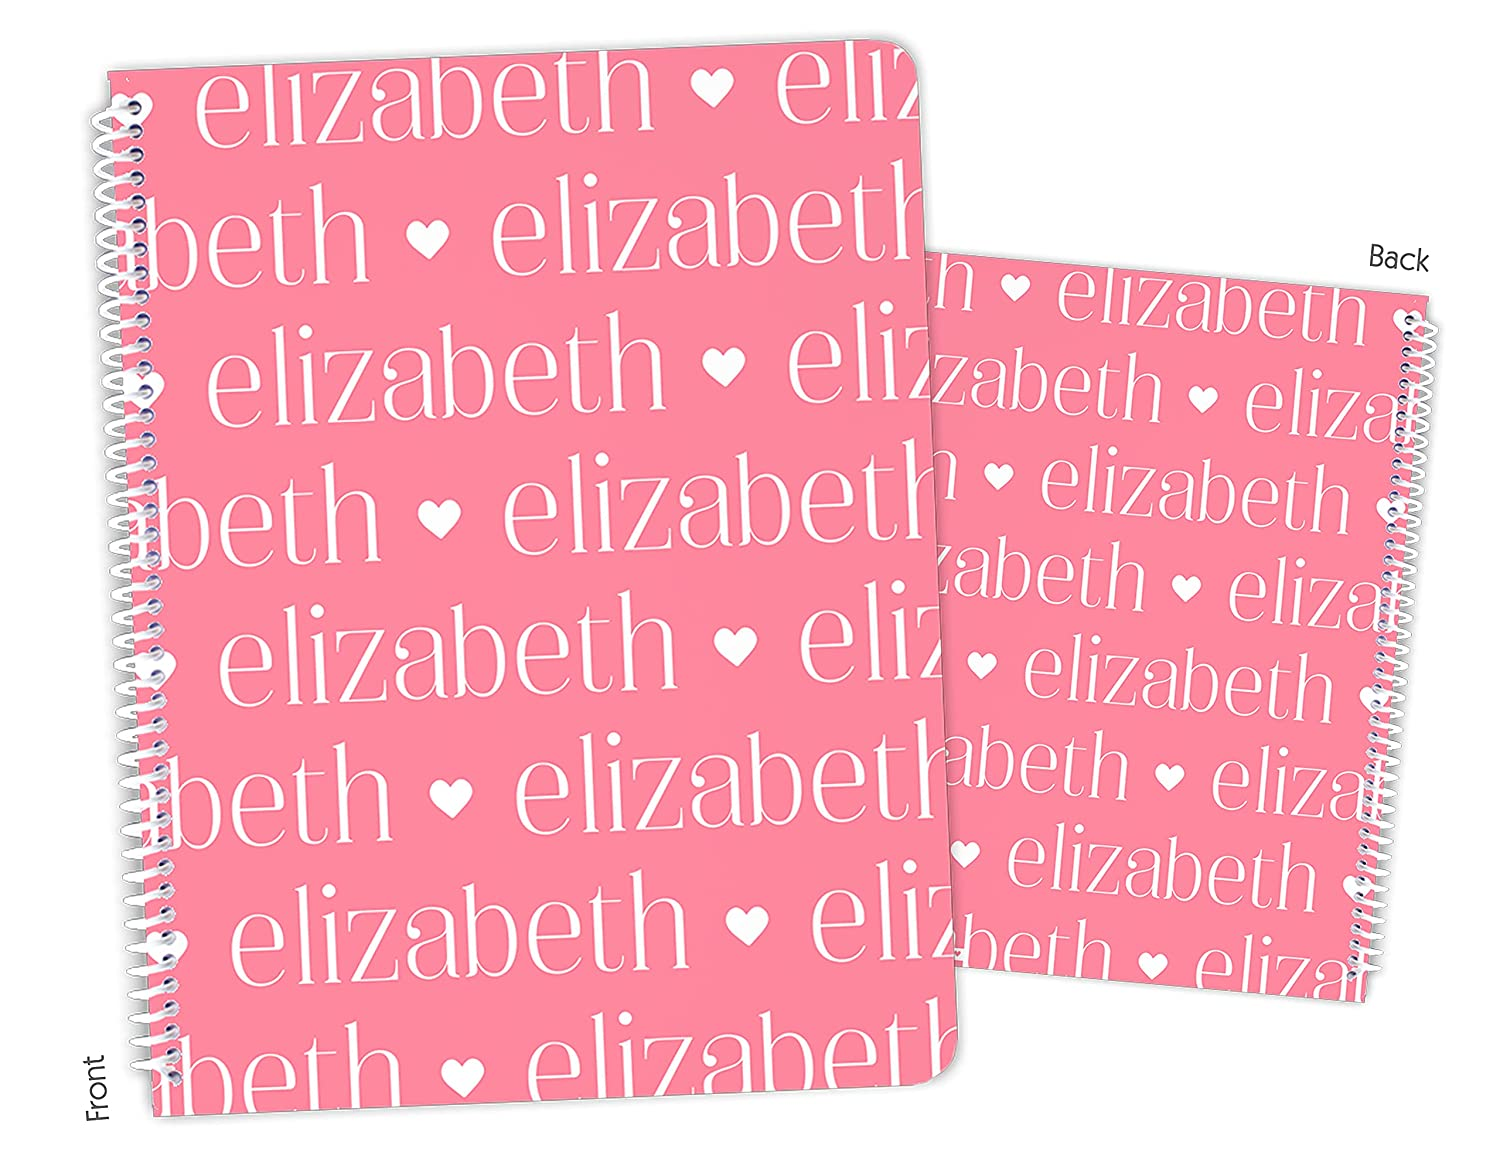 Beauty products Personalized 4 years warranty Name Hearts ANY COLOR Notebook Sketchb Bound Spiral